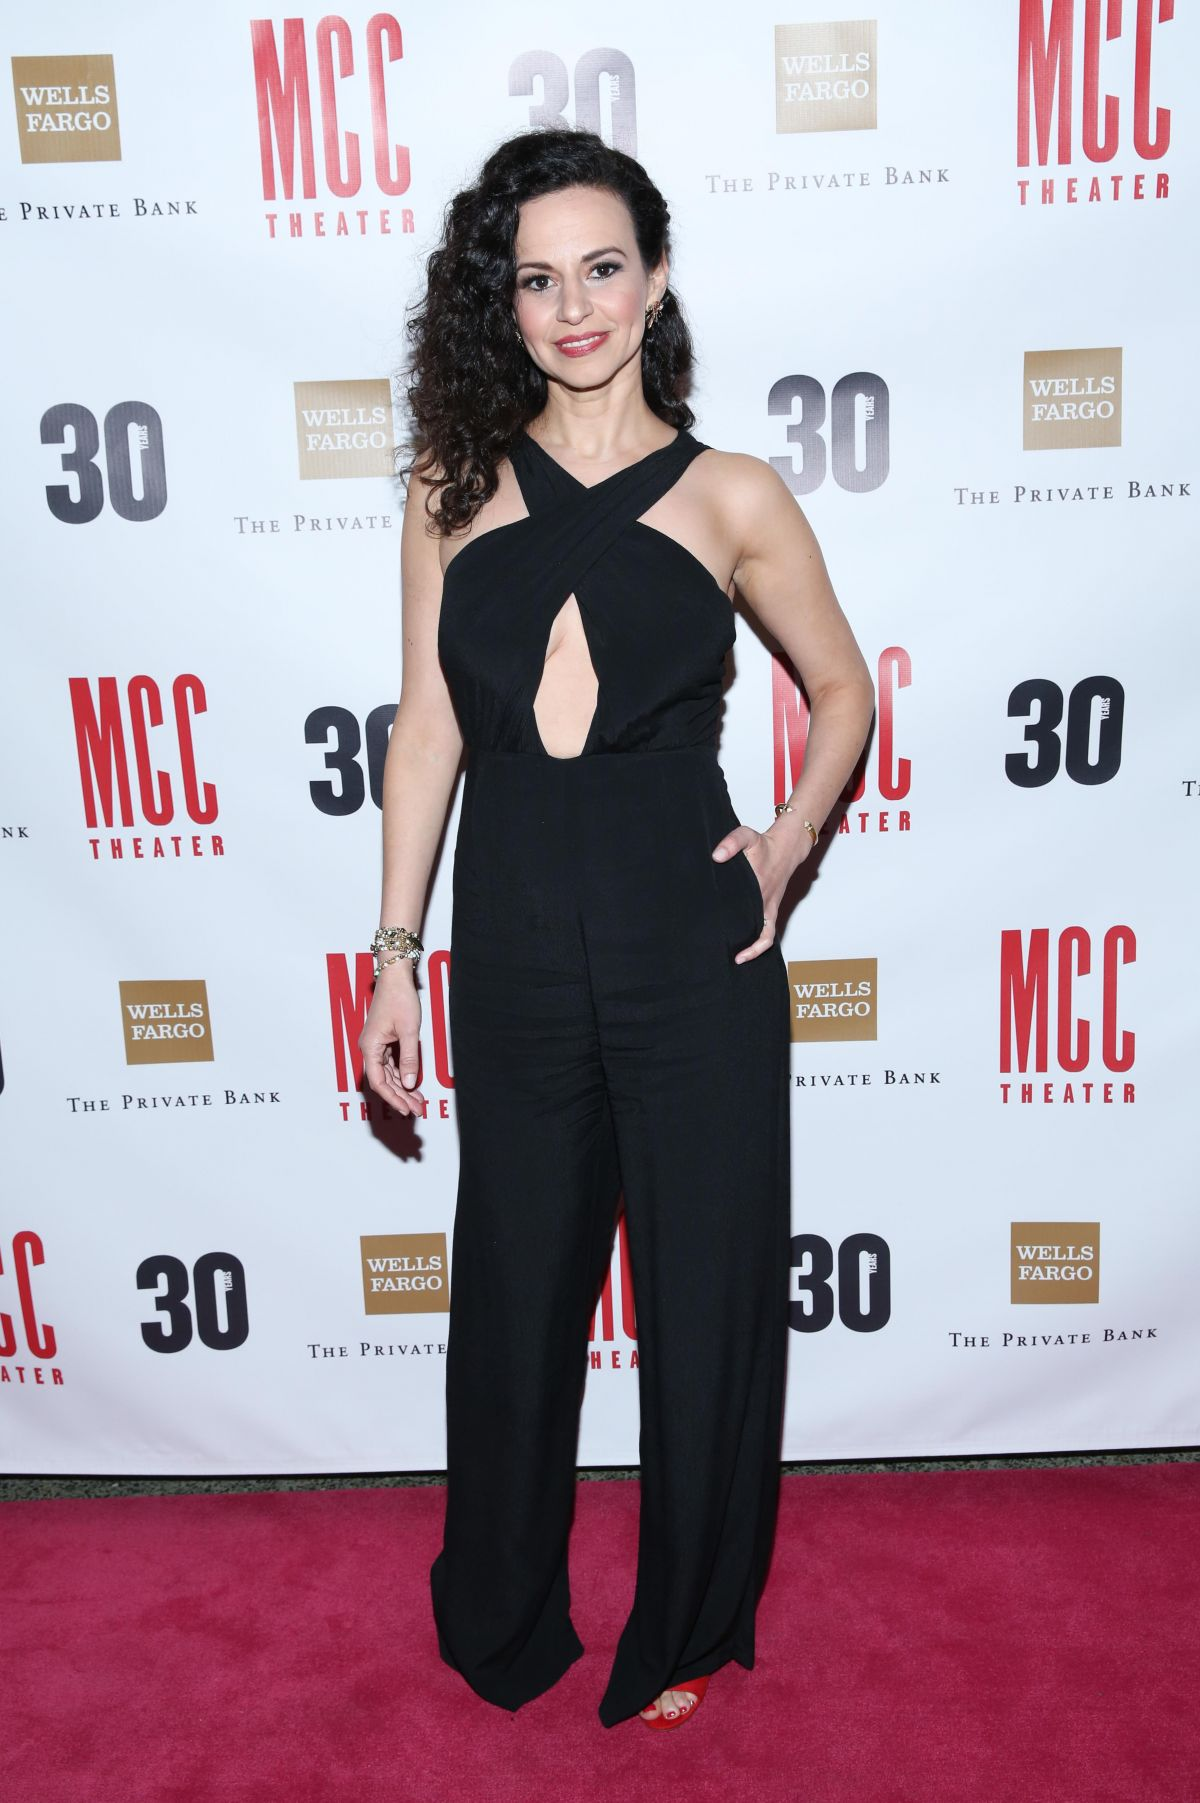 MANDY GONZALEZ at Miscat 2017 Gala in New York 04/03/2017